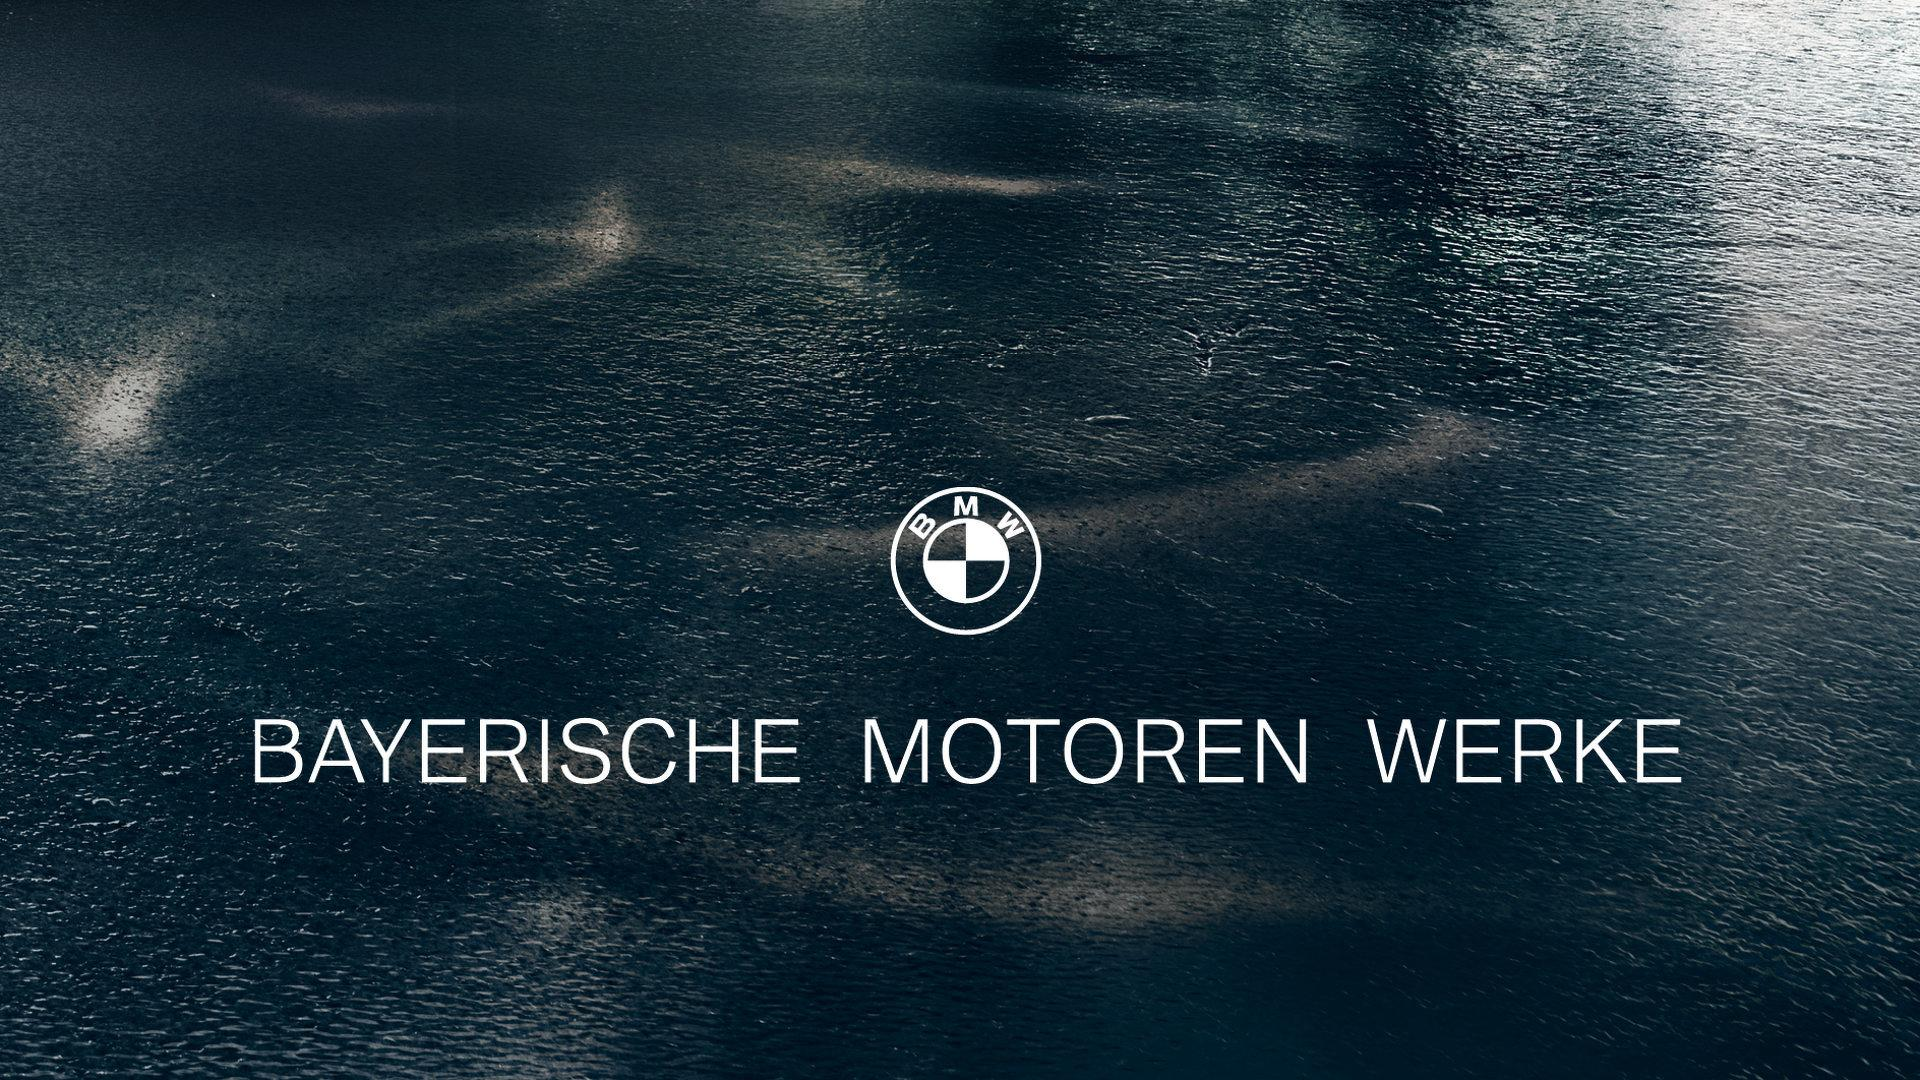 Bmw Reveals New Black And White Logo For Elite Models